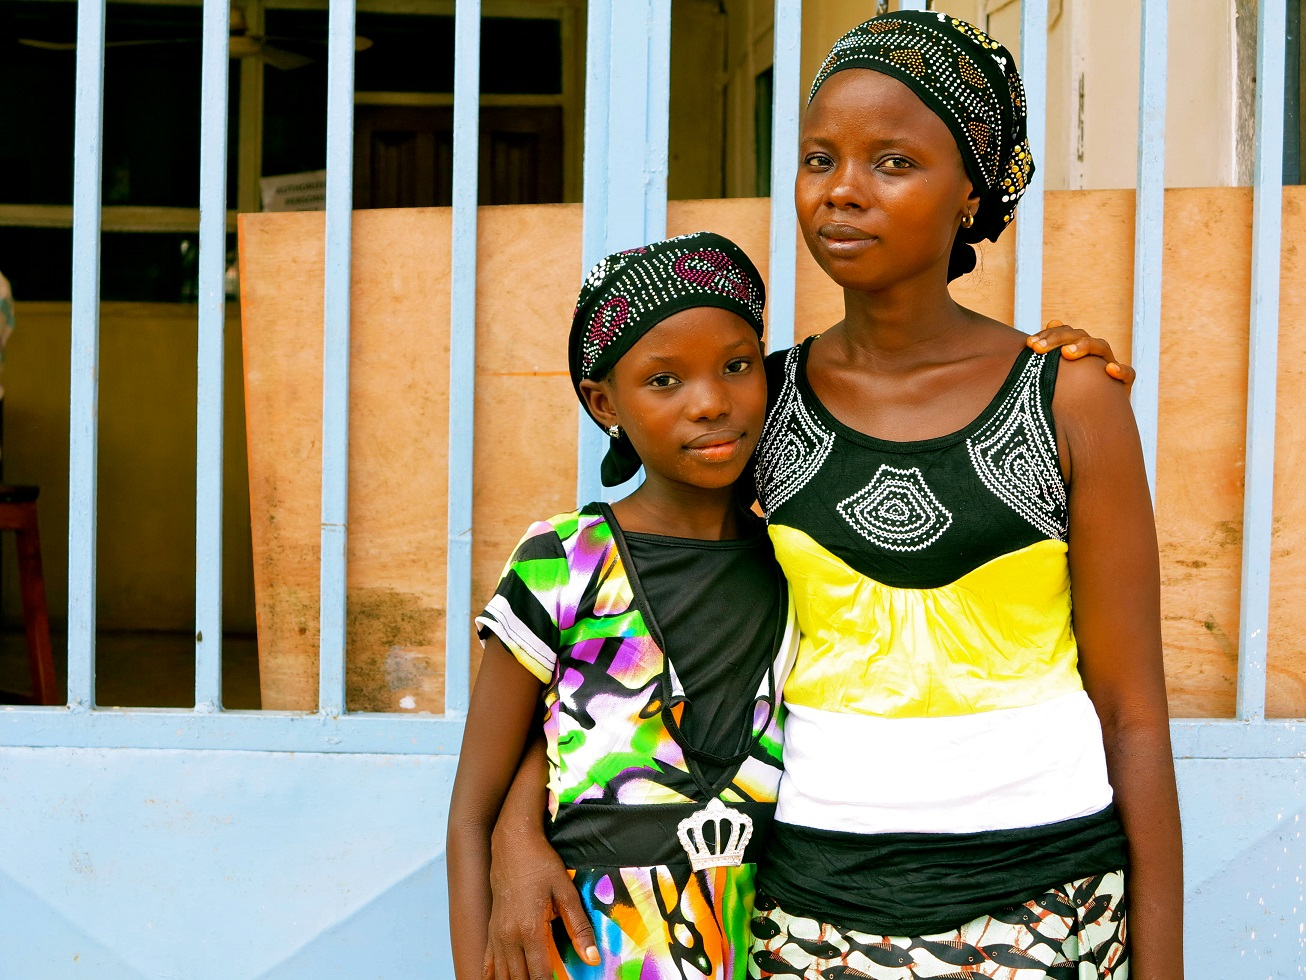 Fatmata stands and her 11-year-old daughter, Tata, are both survivors of Ebola from Sierra Leone. © UNICEF/NYHQ2014-1059/Dunlop